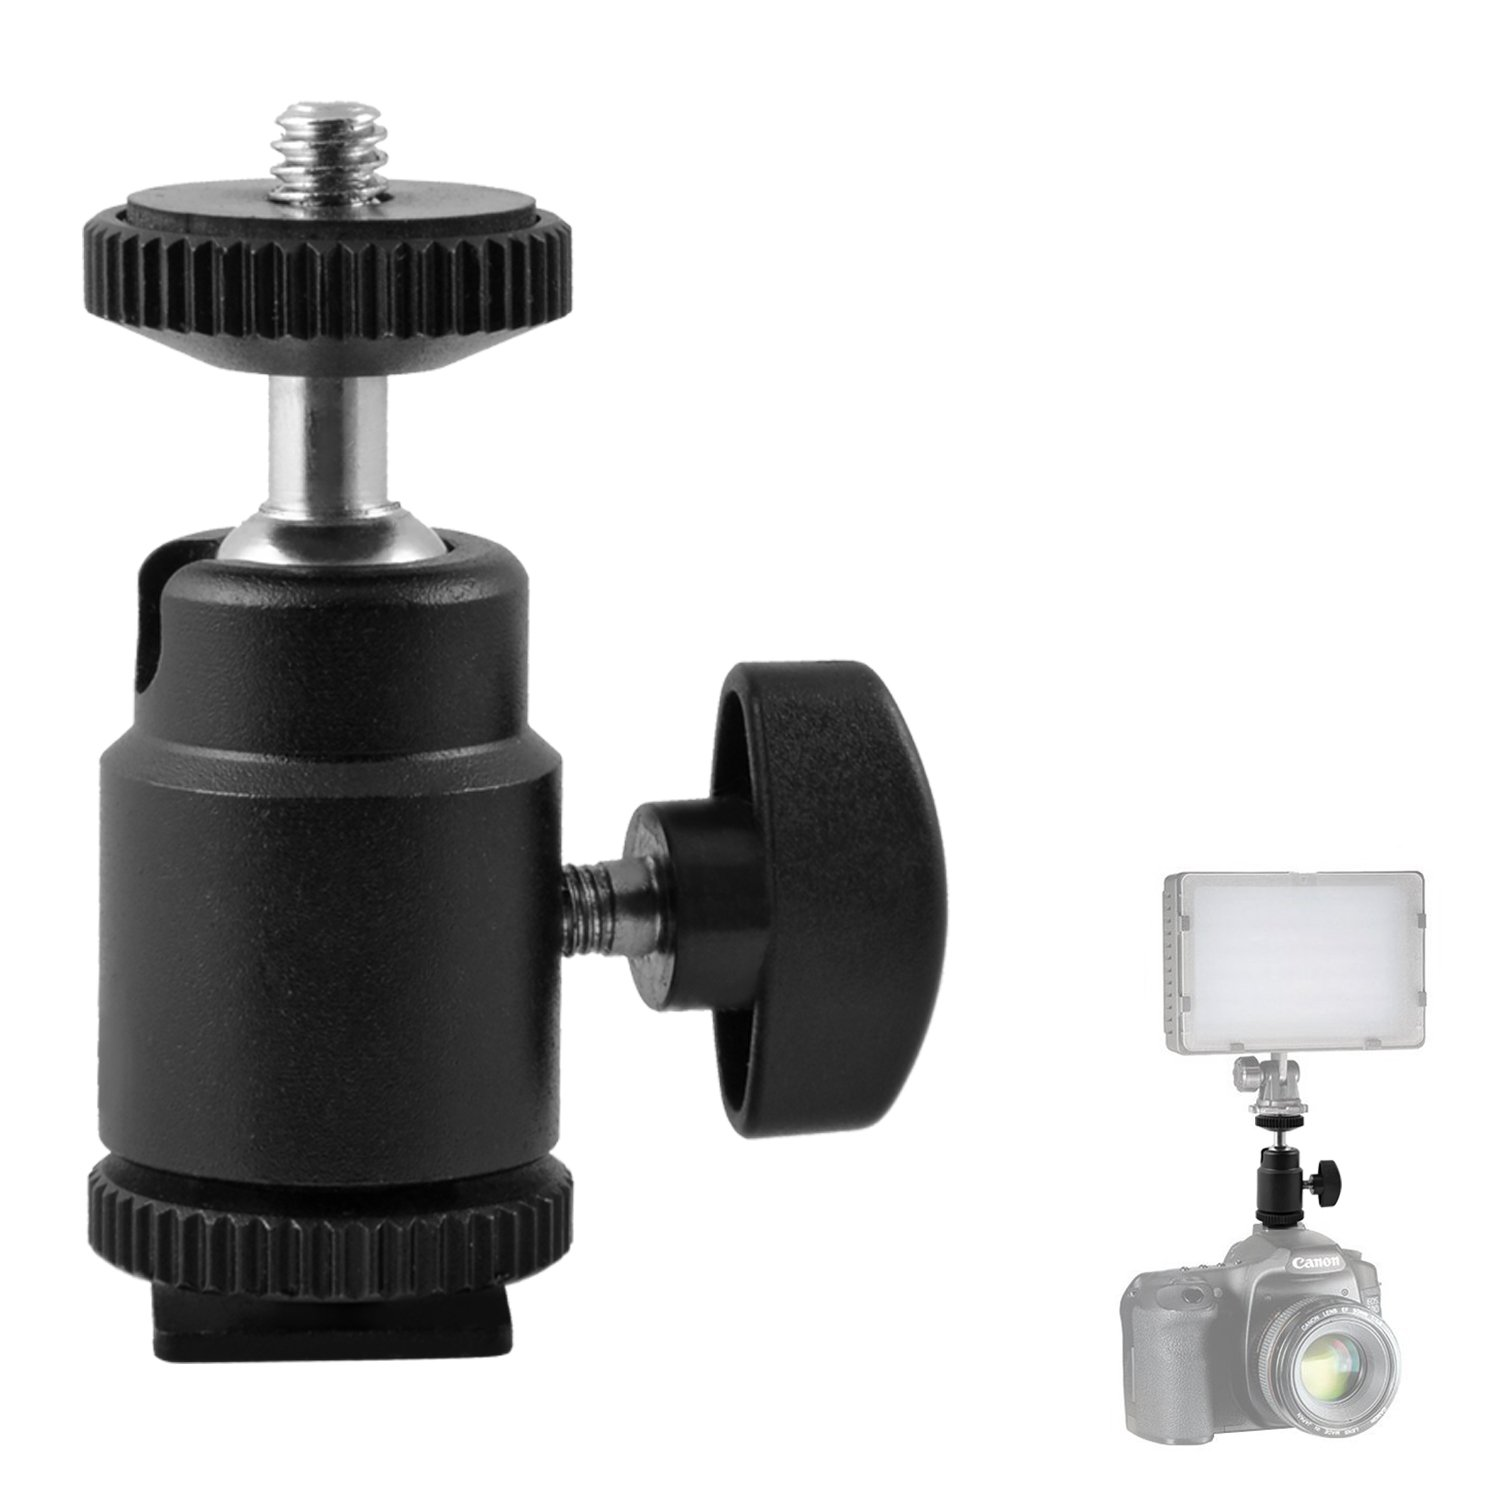 "pangshi Hot Shoe Adapter, Mini Ball Head 1/4"" Thread Hot Shoe Mount 360 Degree Compatible with Cameras, Camcorders, Smartphone, Gopro, LED Video Light, Microphone, Video Monitor"